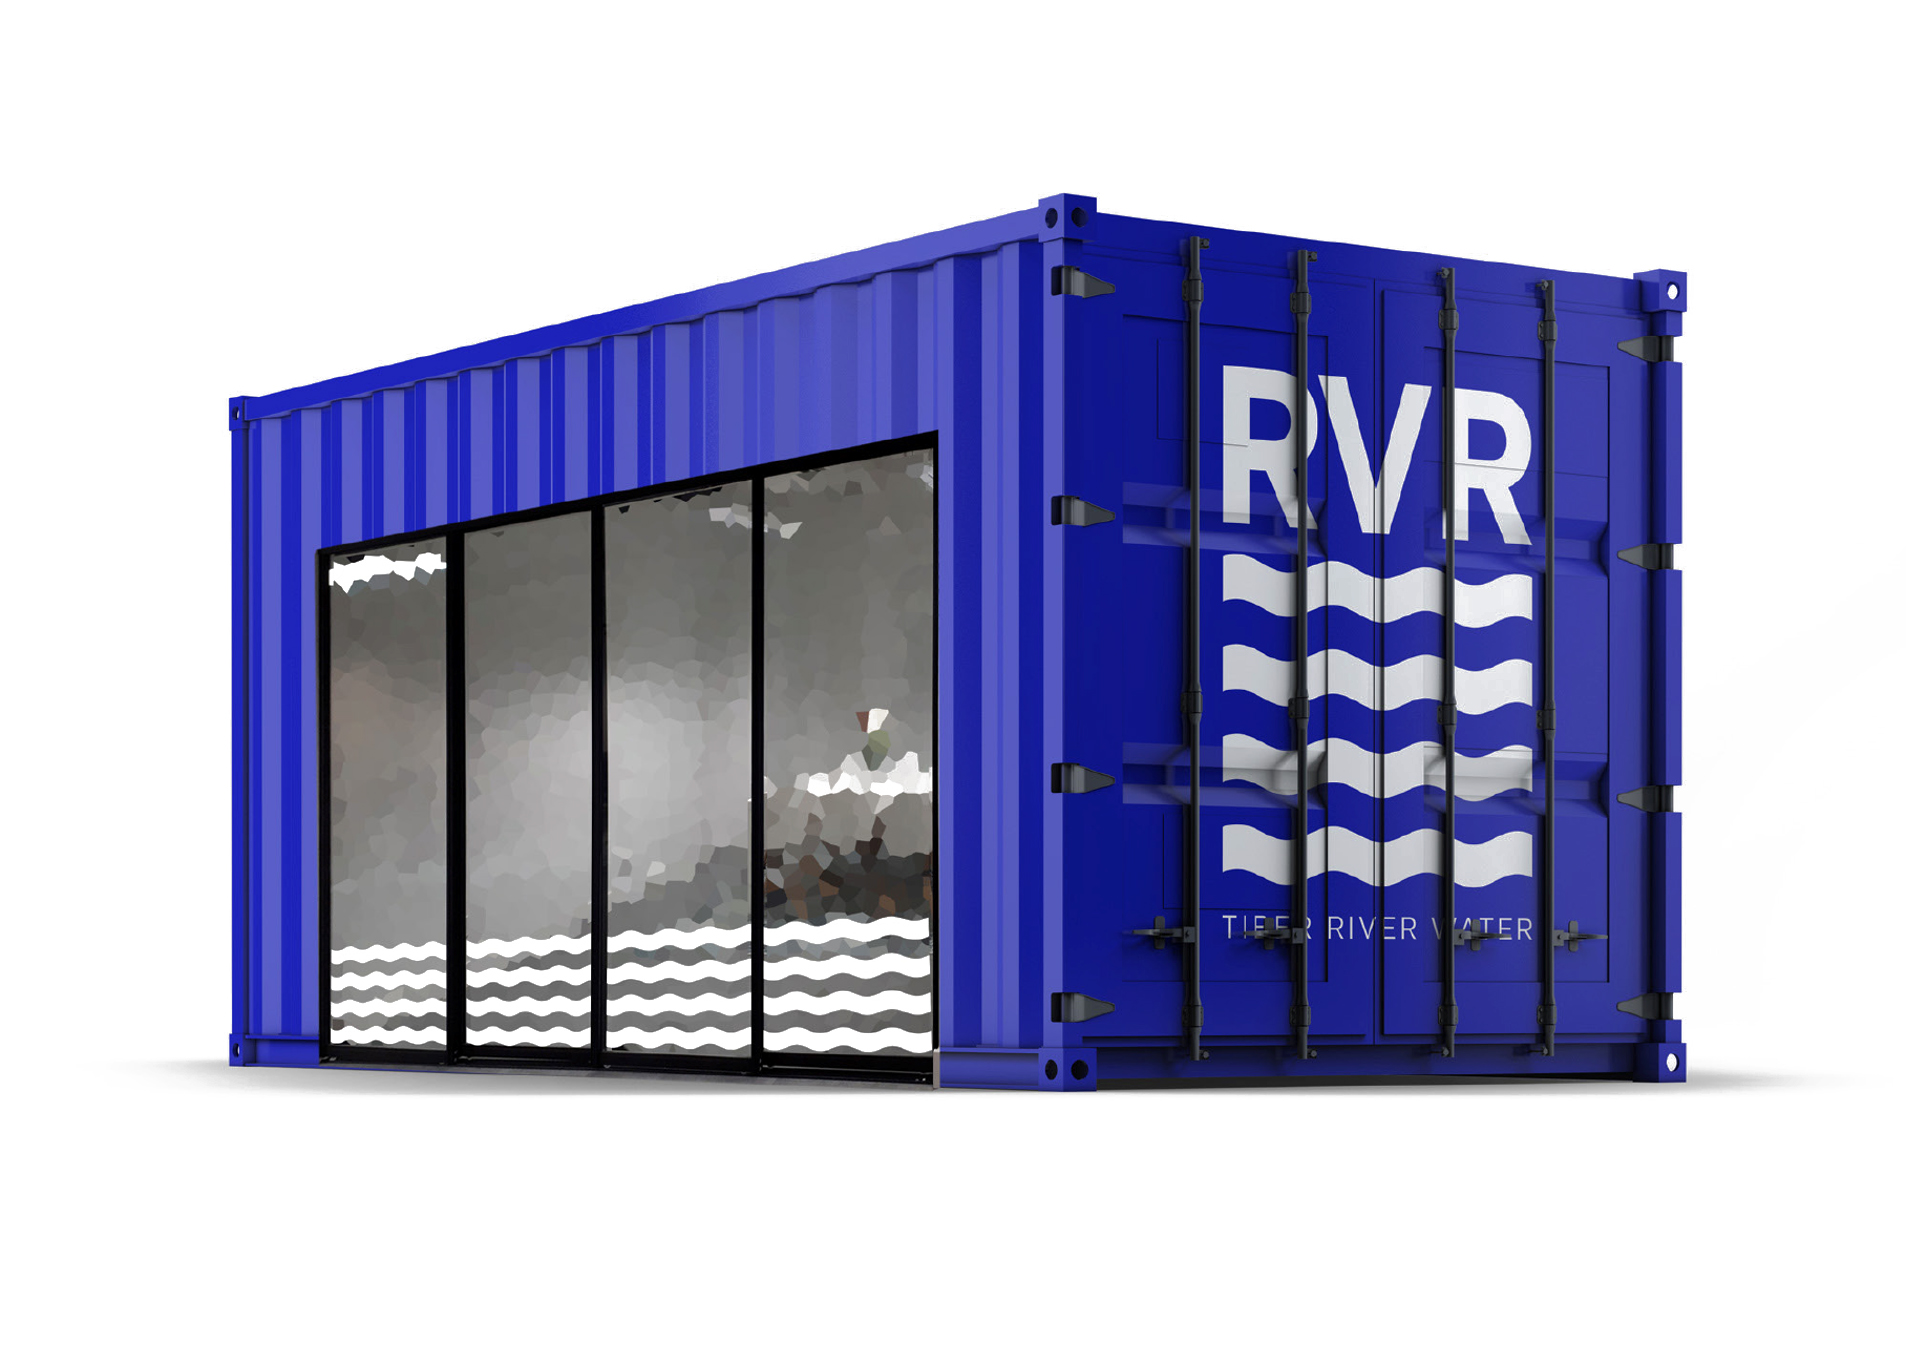 Shipping container render whitebckground.jpg